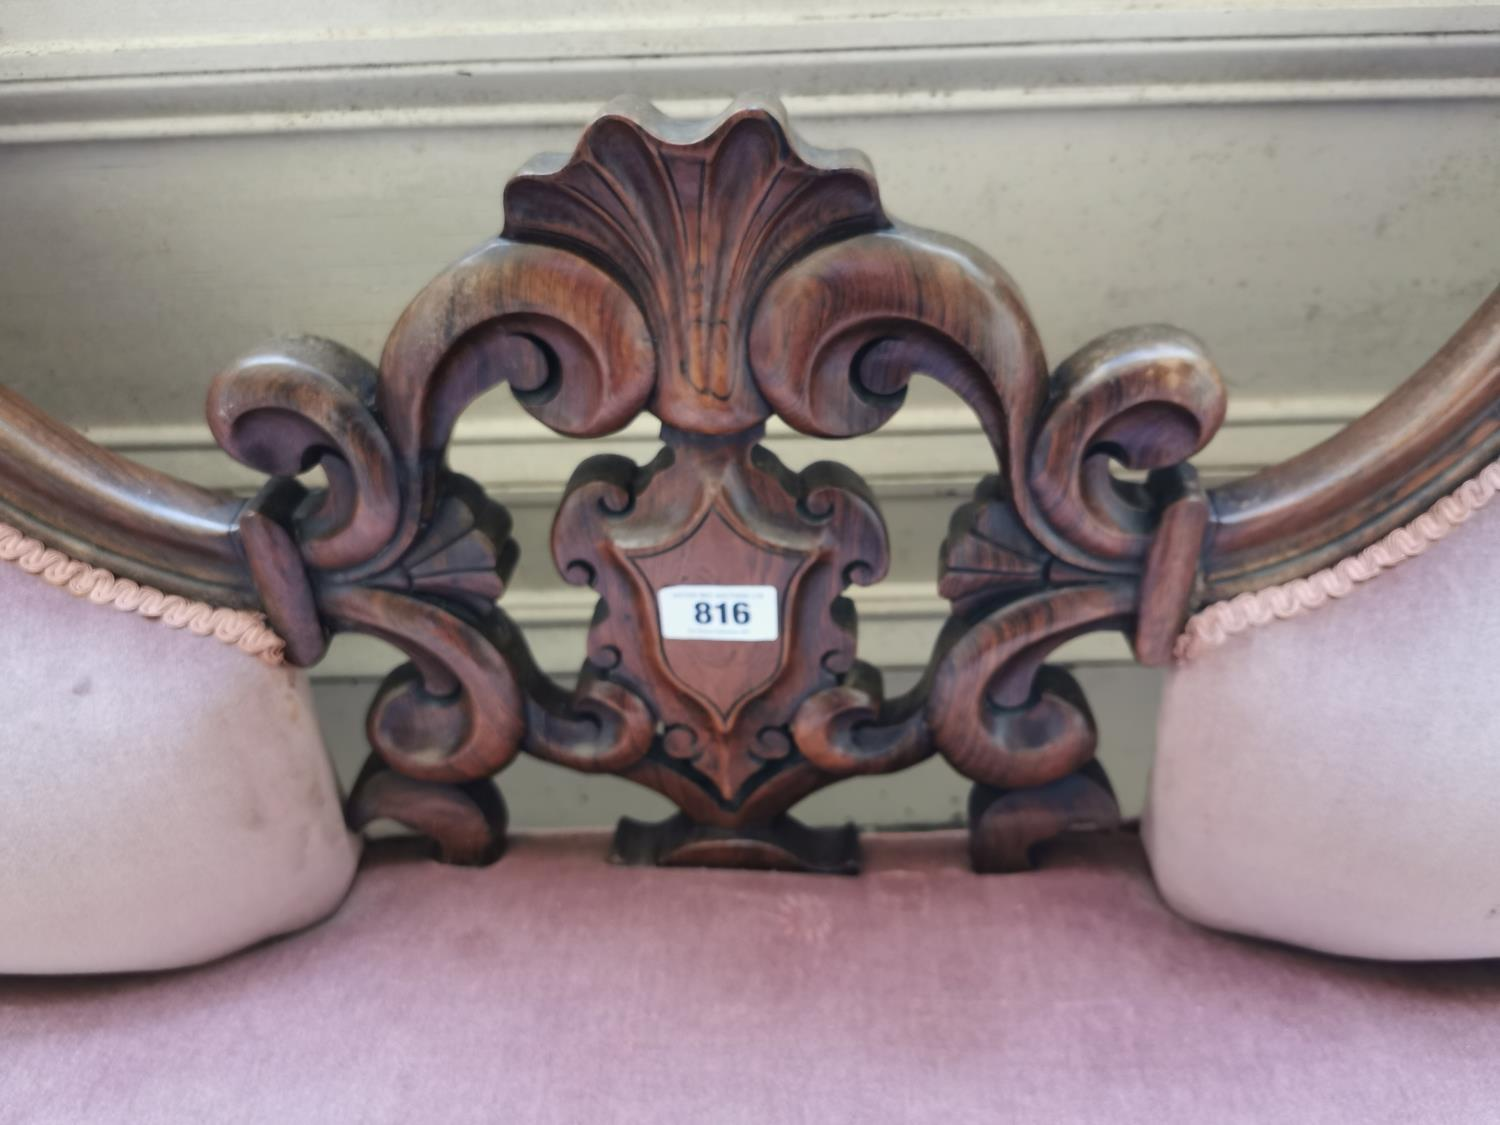 19th C. rosewood and upholstered chaise longue. - Image 3 of 3